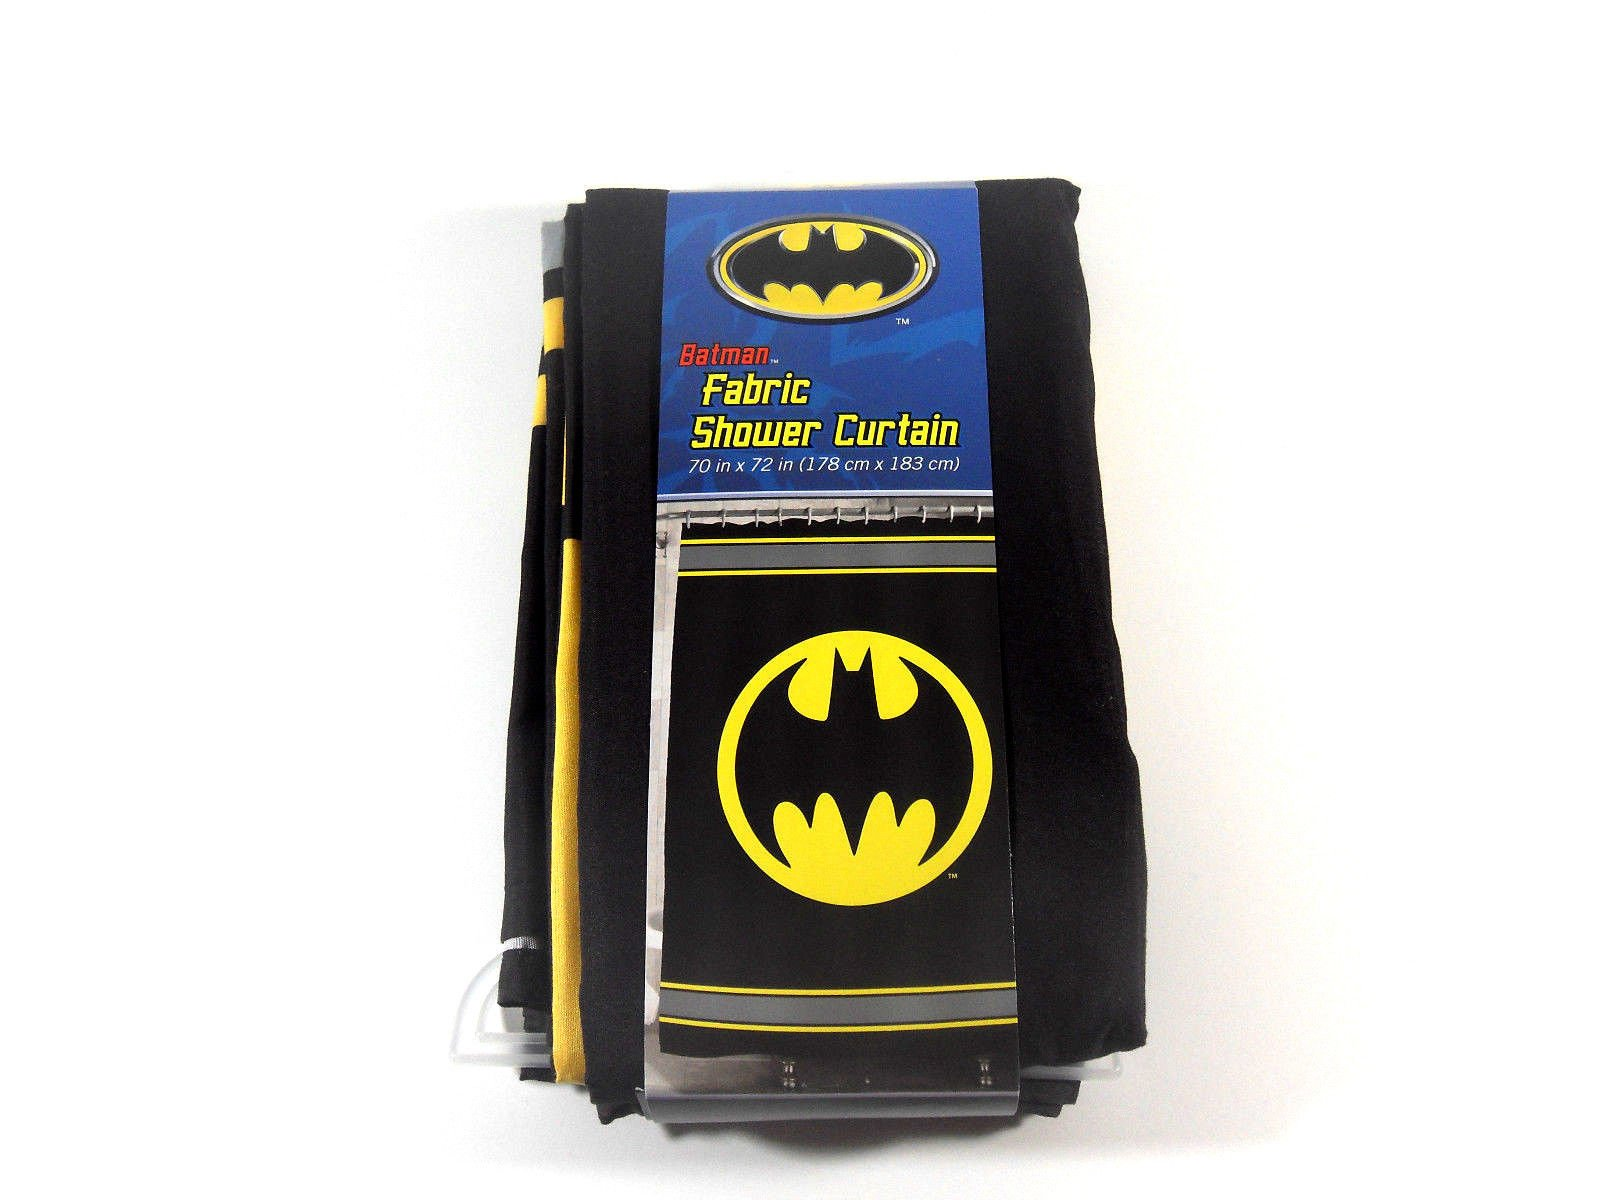 Batman Bathroom Set, Shower Curtain, Hooks, Bath Rug, Bath Towel, Pump Lotion, Toothbrush Holder by Batman (Image #6)